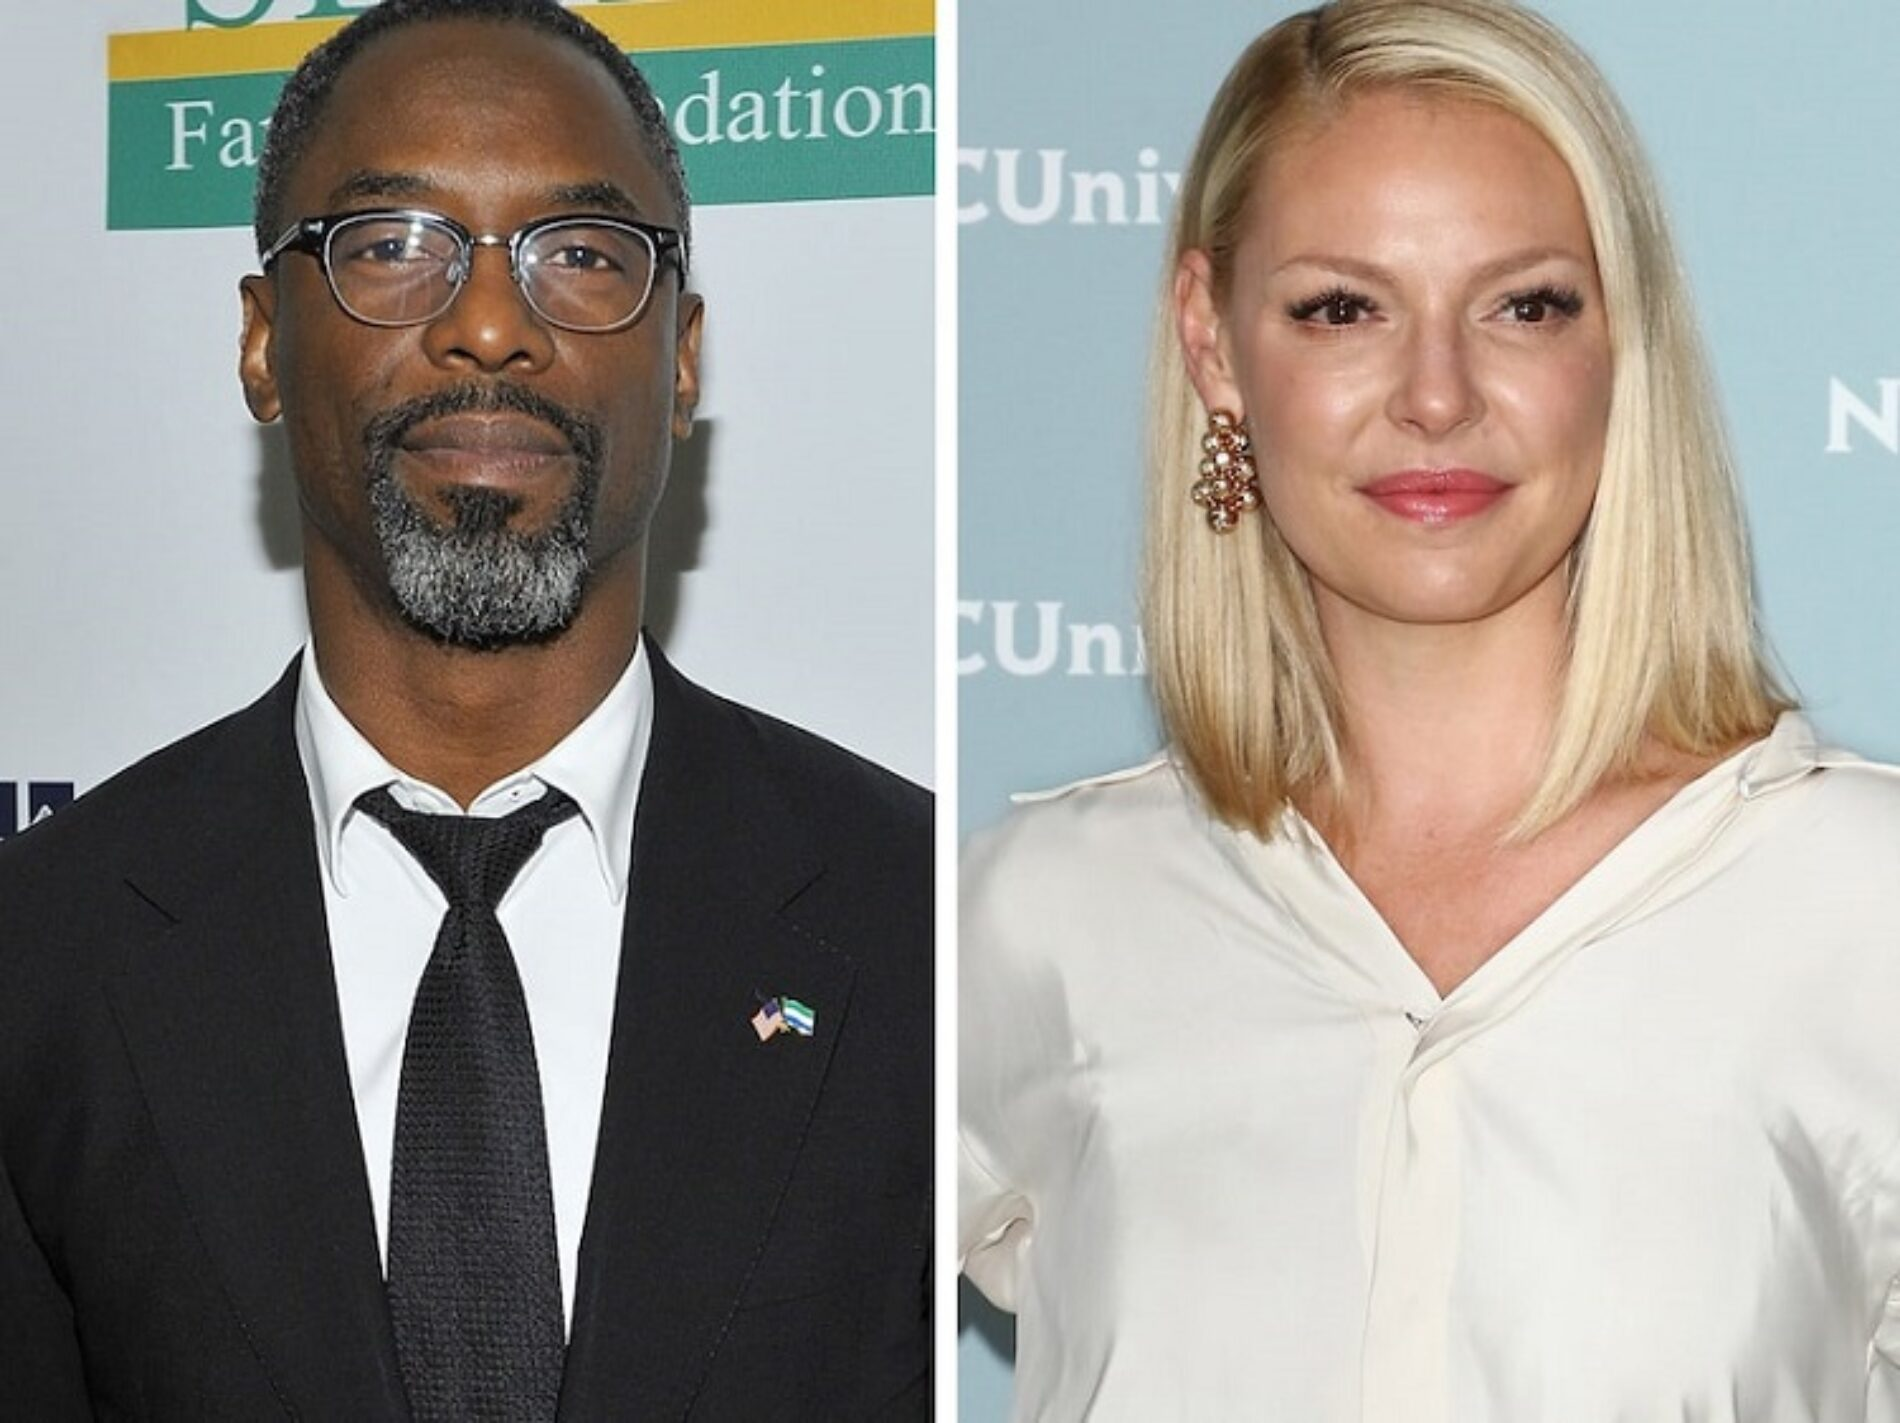 Isaiah Washington reignites feud with former 'Grey's Anatomy' co-star Katherine Heigl over his use of homophobic slur 13 years ago